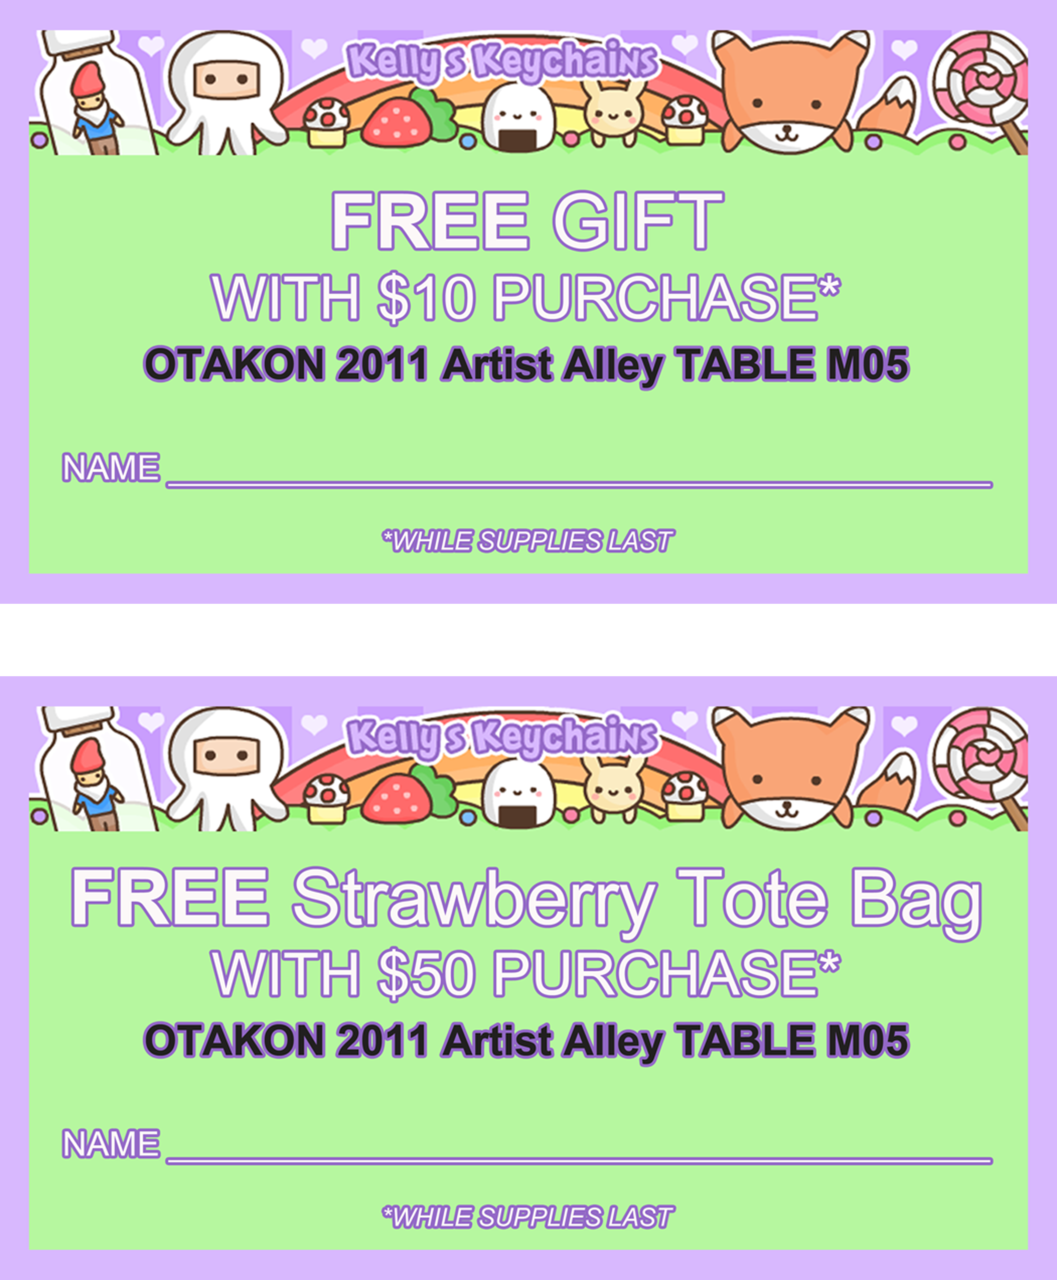 Otakon 2011 Artist Alley Coupons! Fill in your name, email or deviantART ID when cashing in at the convention.  Can be used together. My Etsy store: http://egyptianruin.etsy.com